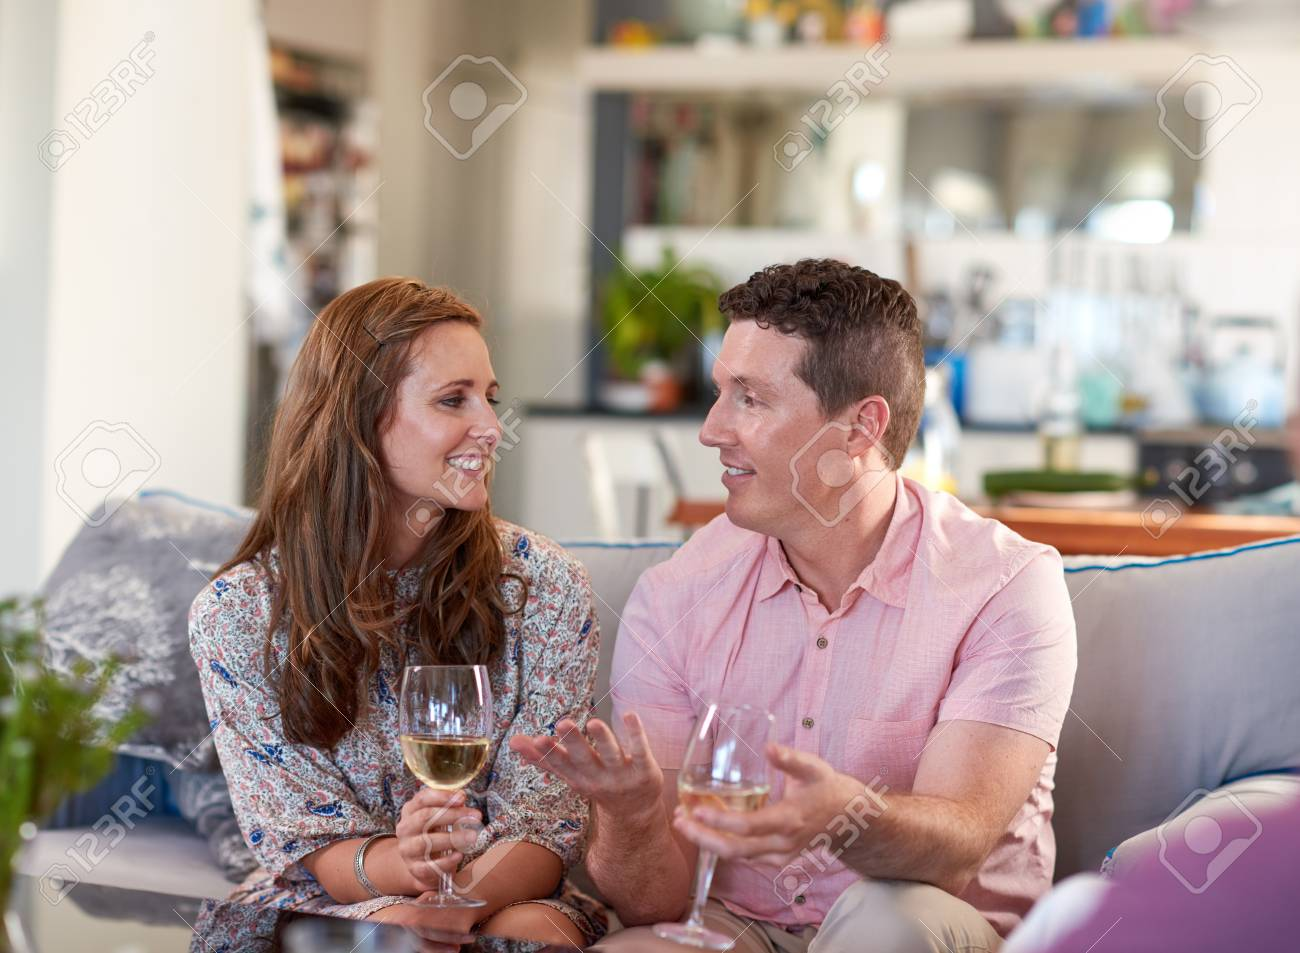 Real Couple Talking Chatting Enjoying Glass Of Wine On The Couch Stock Photo Picture And Royalty Free Image Image 73770546